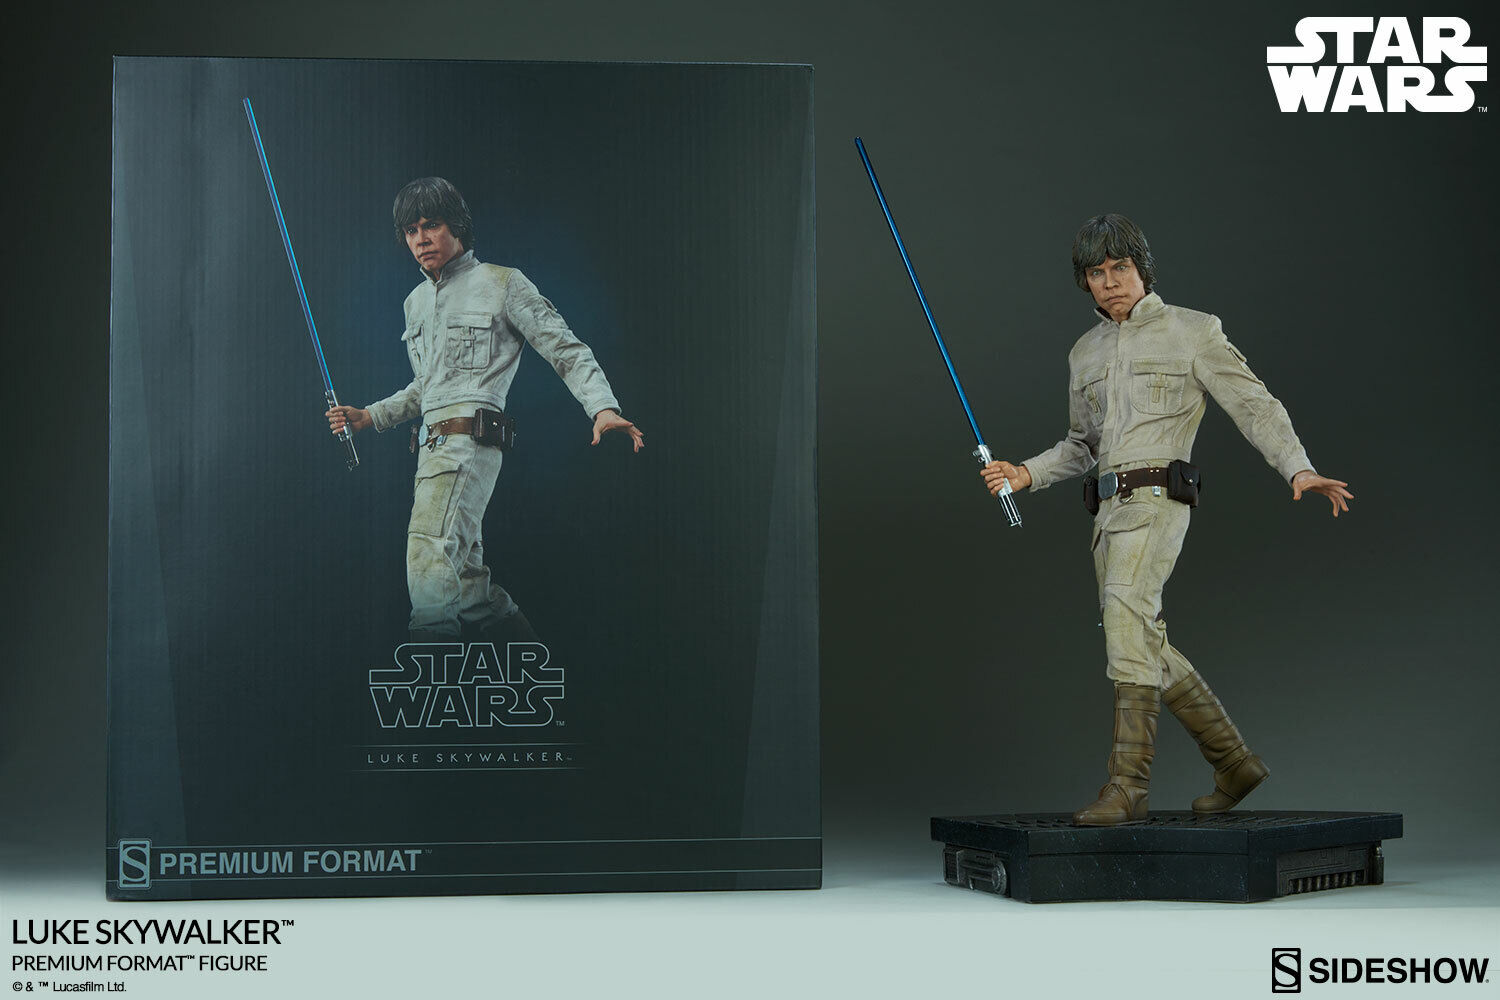 LUKE SKYWALKER PREMIUM FORMAT FIGURE Star Wars Statua by SIDESHOW COLLECTIBLES